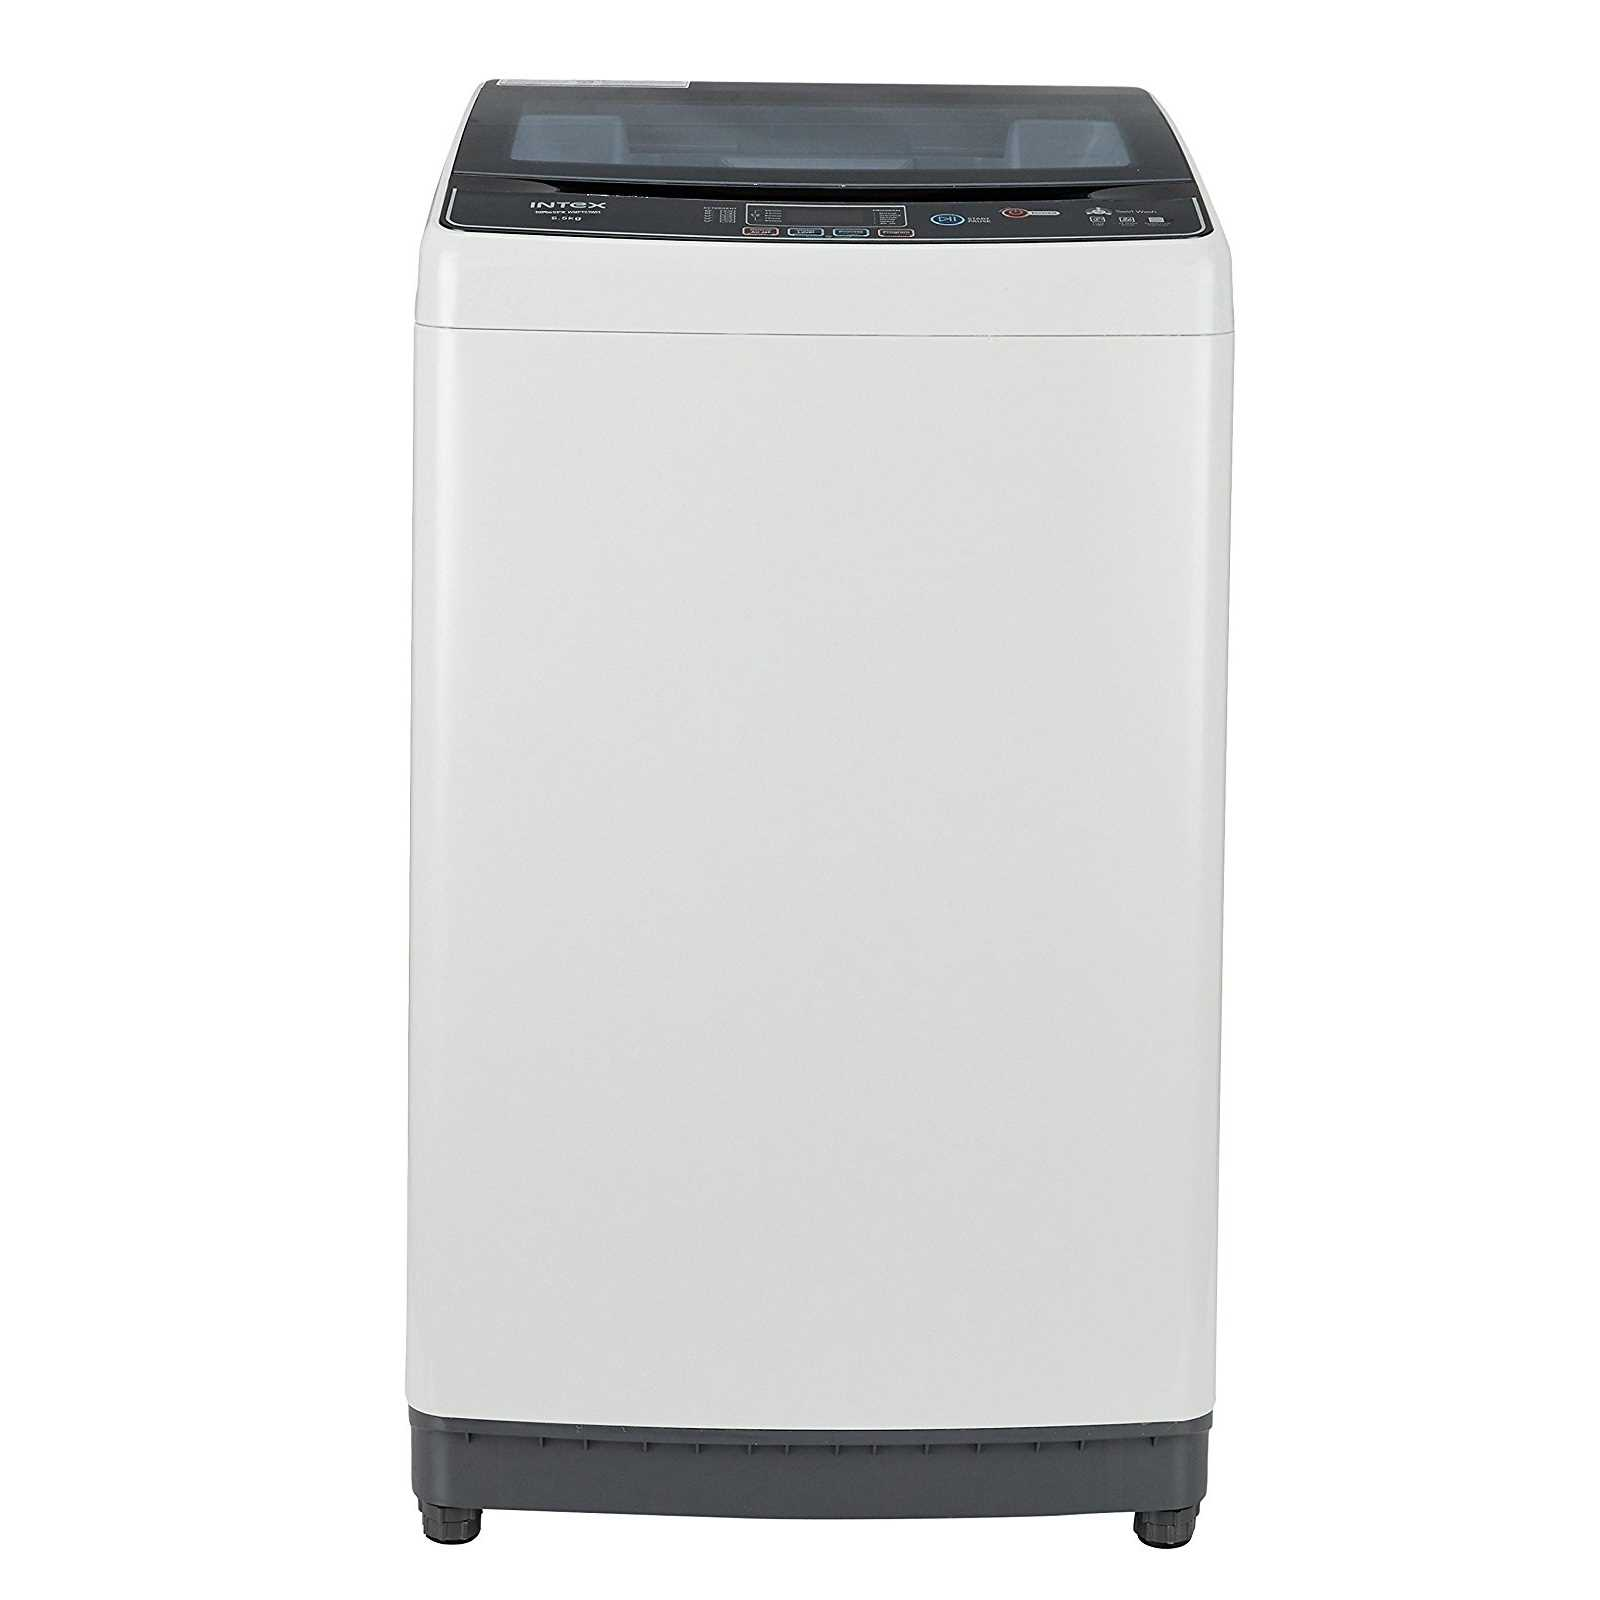 Intex WMFT65WH 6.5 Kg Fully Automatic Top Loading Washing Machine